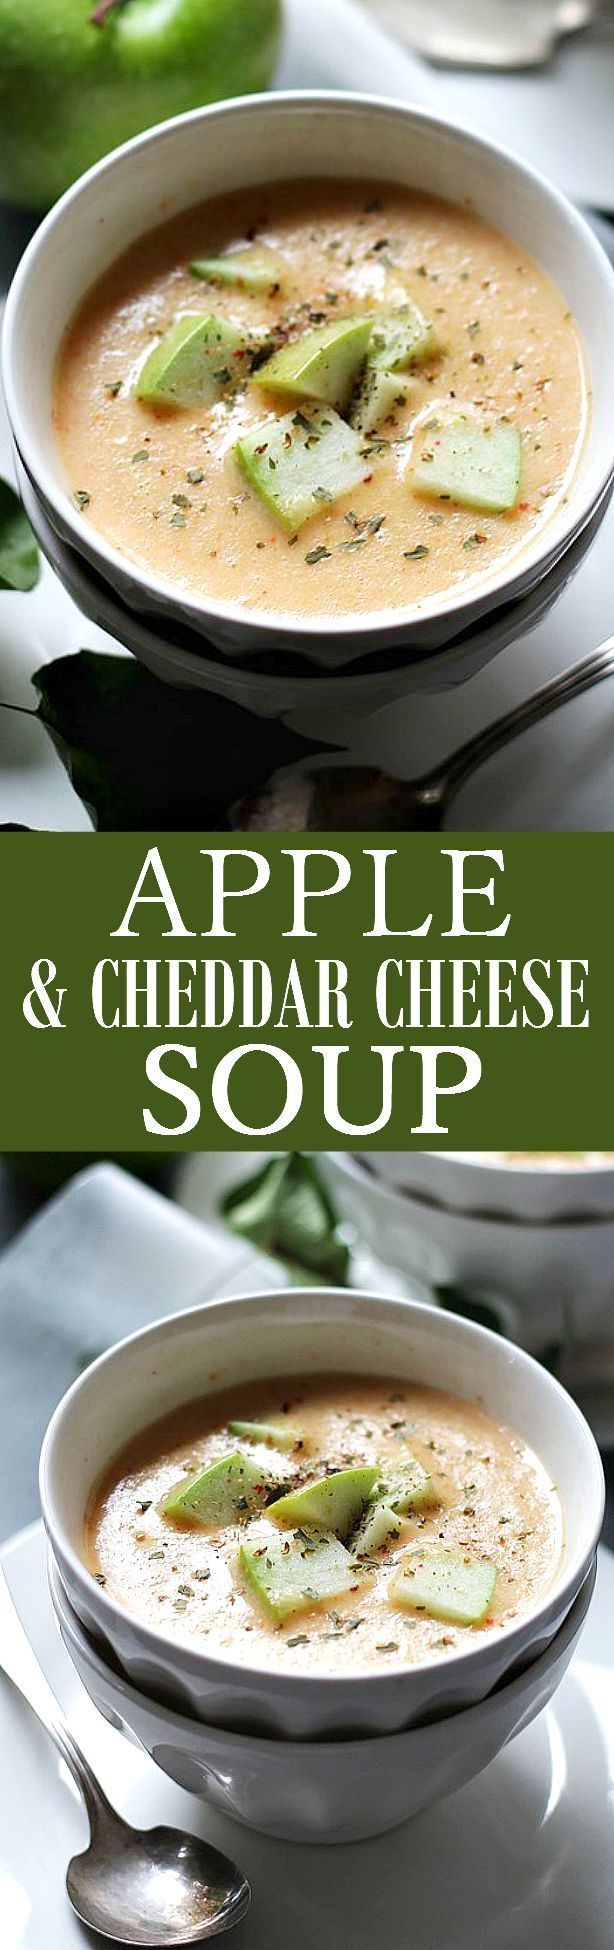 It may sound odd, but this cheesy, creamy and delicious Apple and Cheddar Soup is really, reaaaally good!! Made with tart apples and shredded cheddar cheese, you'll be asking for seconds!